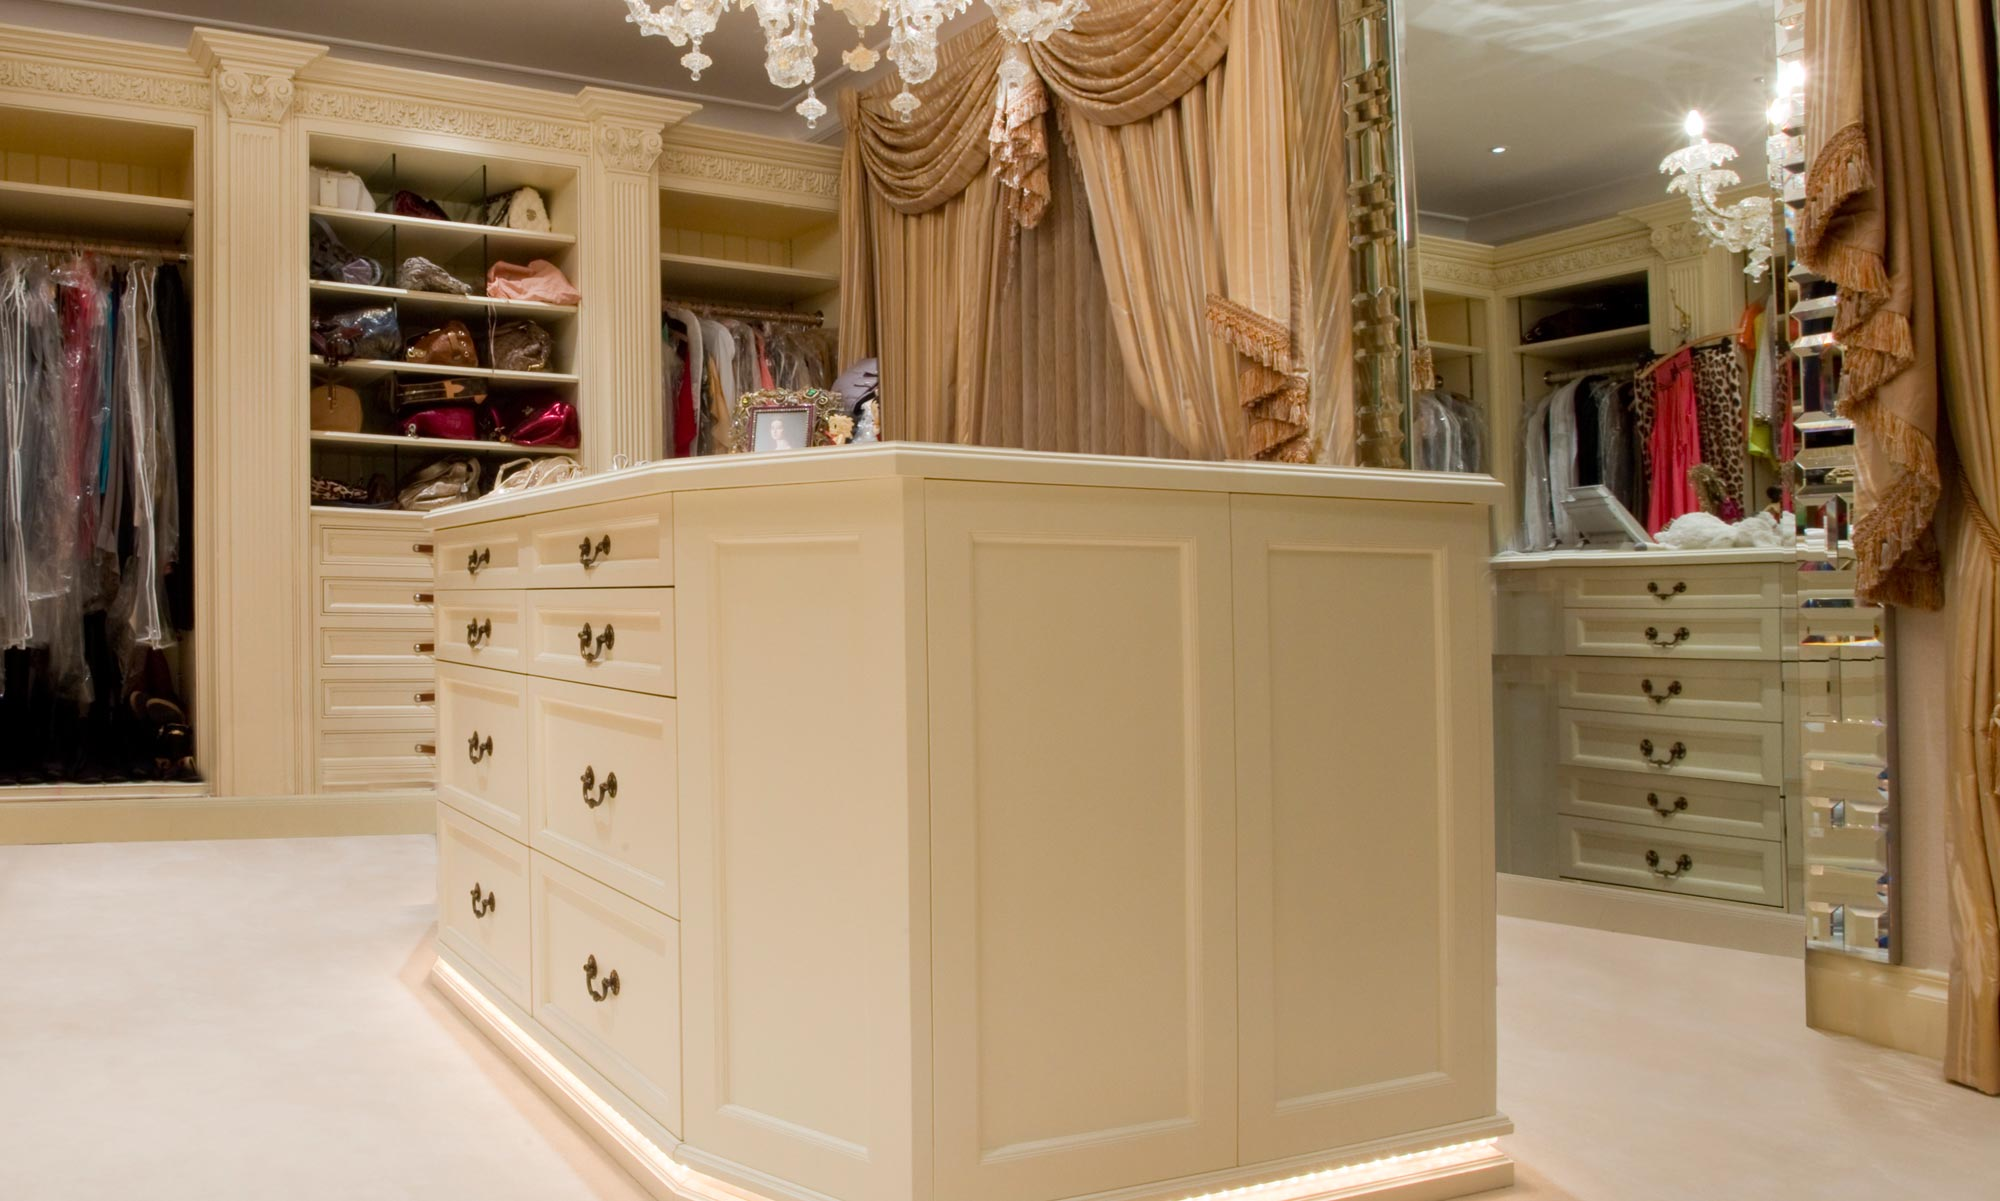 Bespoke Wardrobes London Wyndham Design For Residential Properties And Commercial Clients